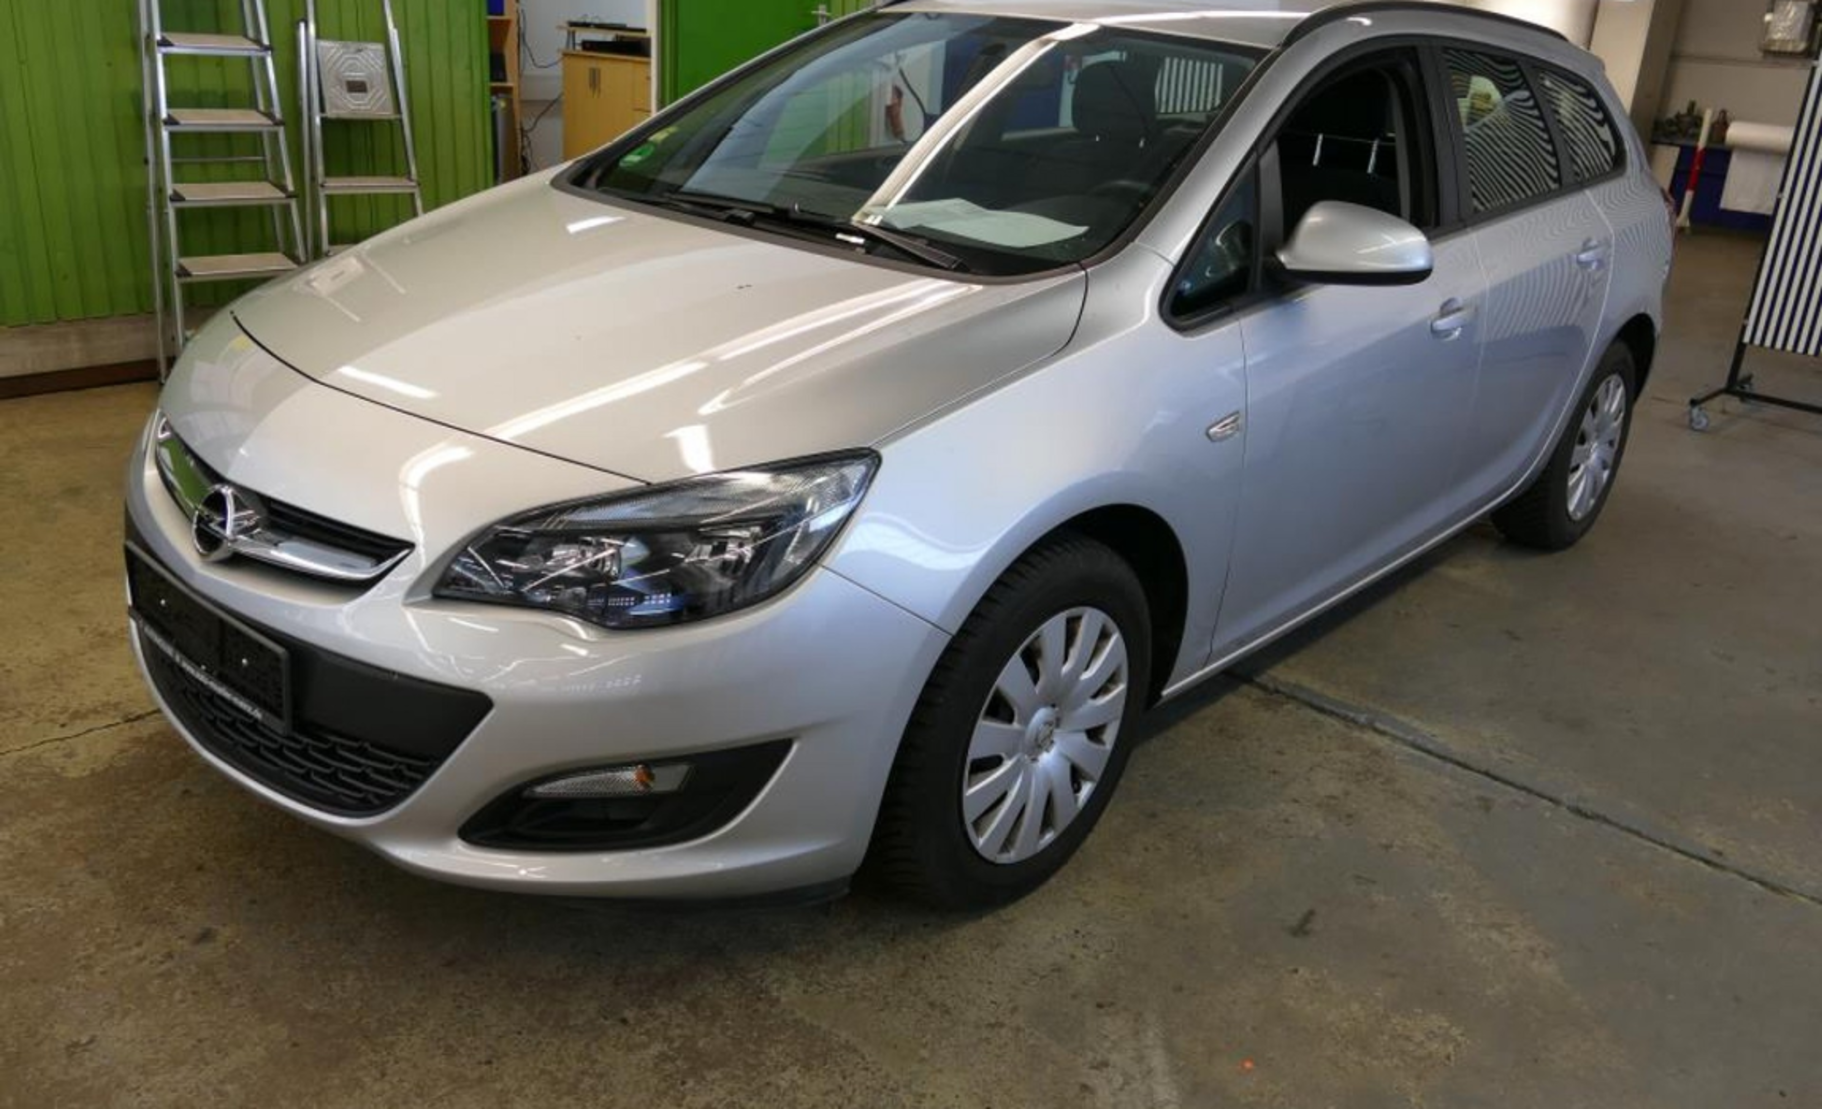 Opel Astra 1.6 Sports Tourer Edition (529836) detail1